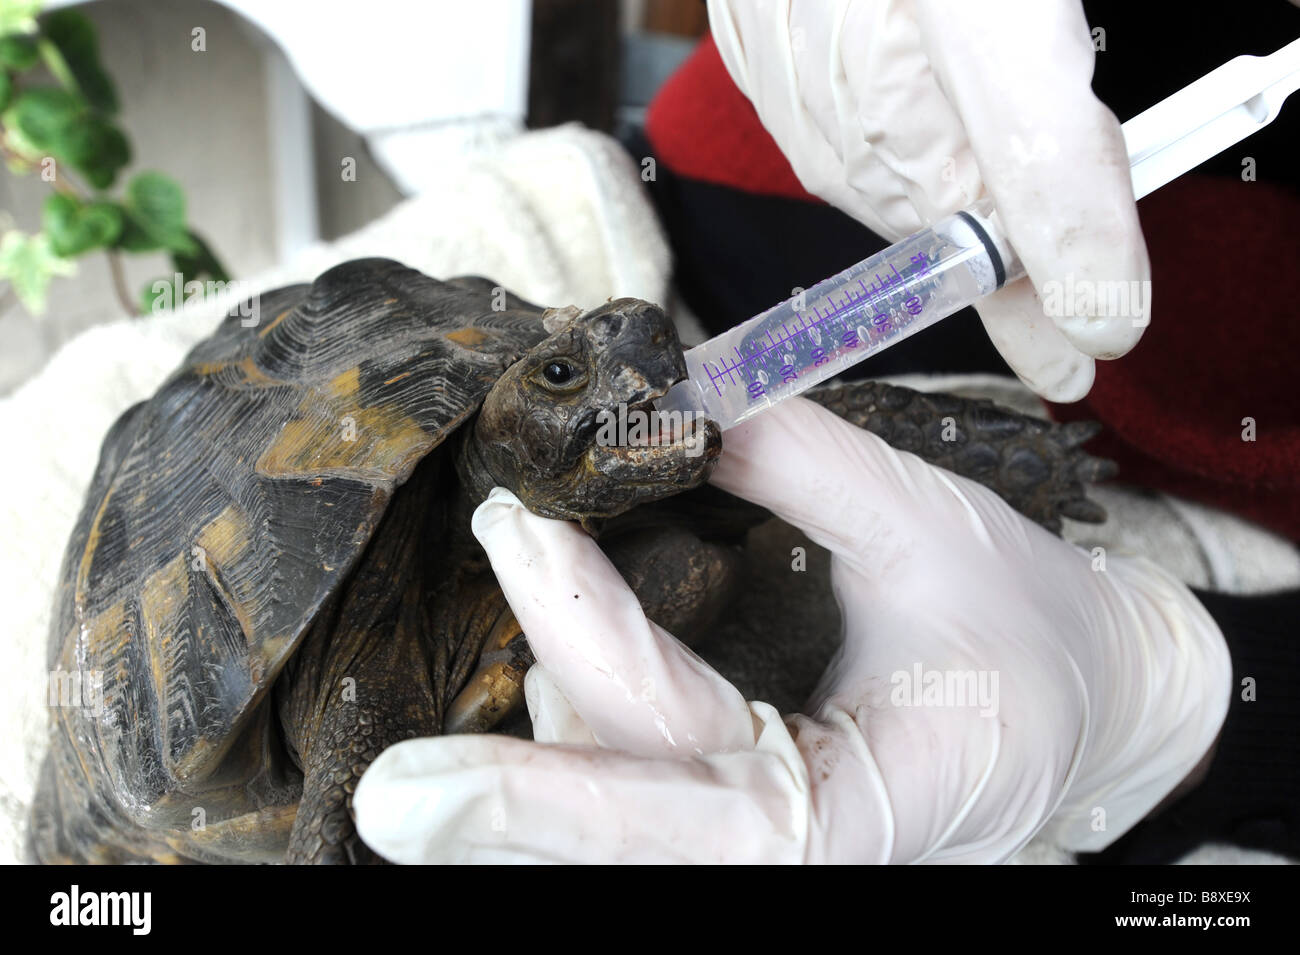 Tortoise gets first drink from syringe after waking from hibernation - Stock Image